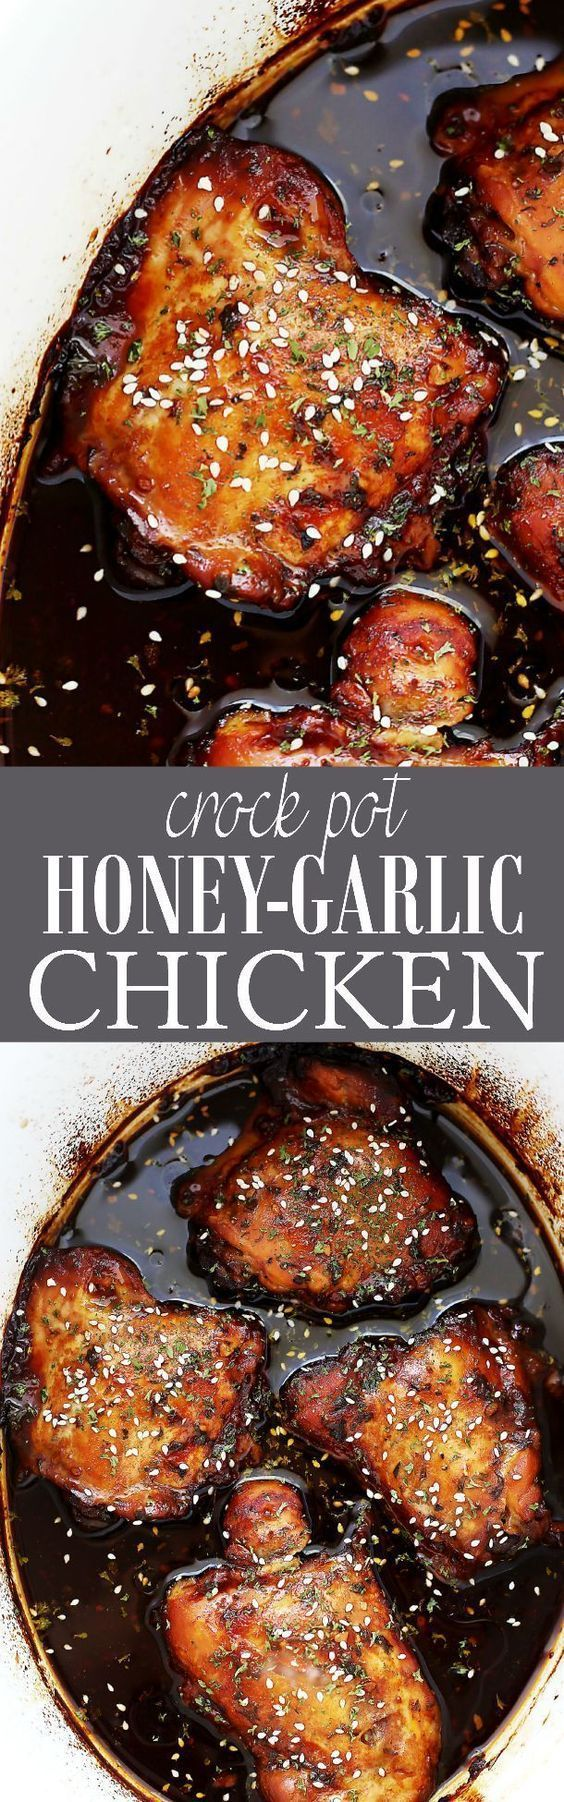 Easy crock pot recipe for chicken thighs cooked in an incredibly delicious honey-garlic sauce.